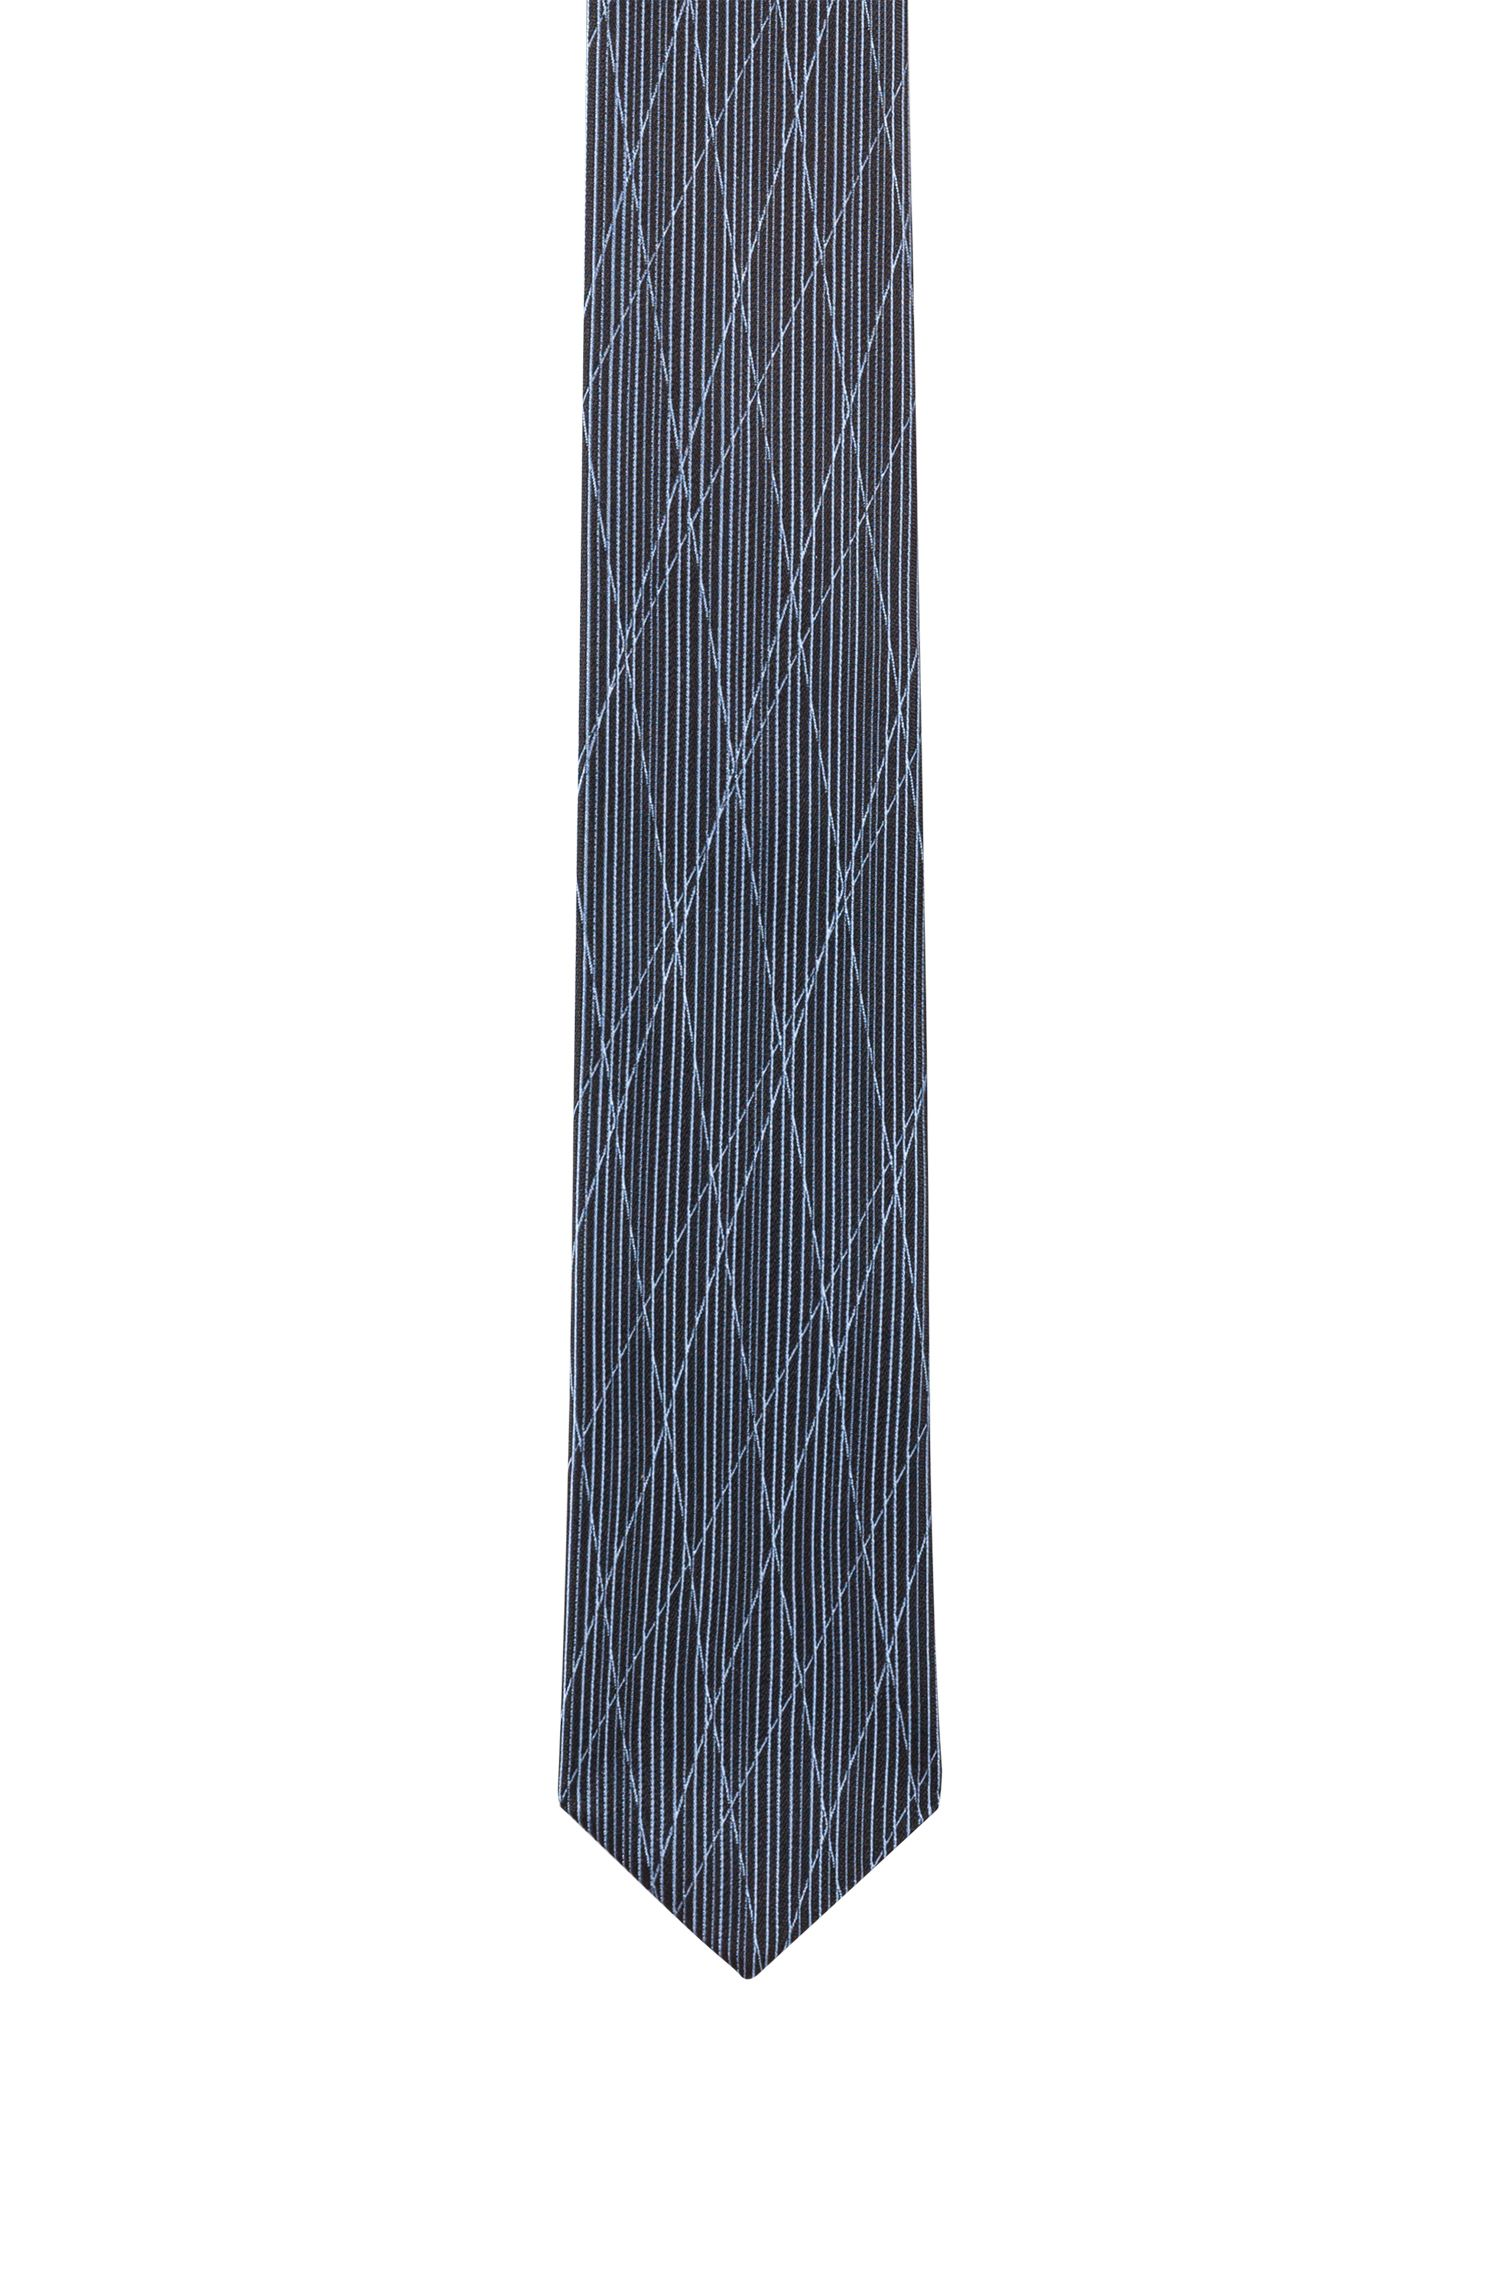 Silk-jacquard tie with criss-cross pattern